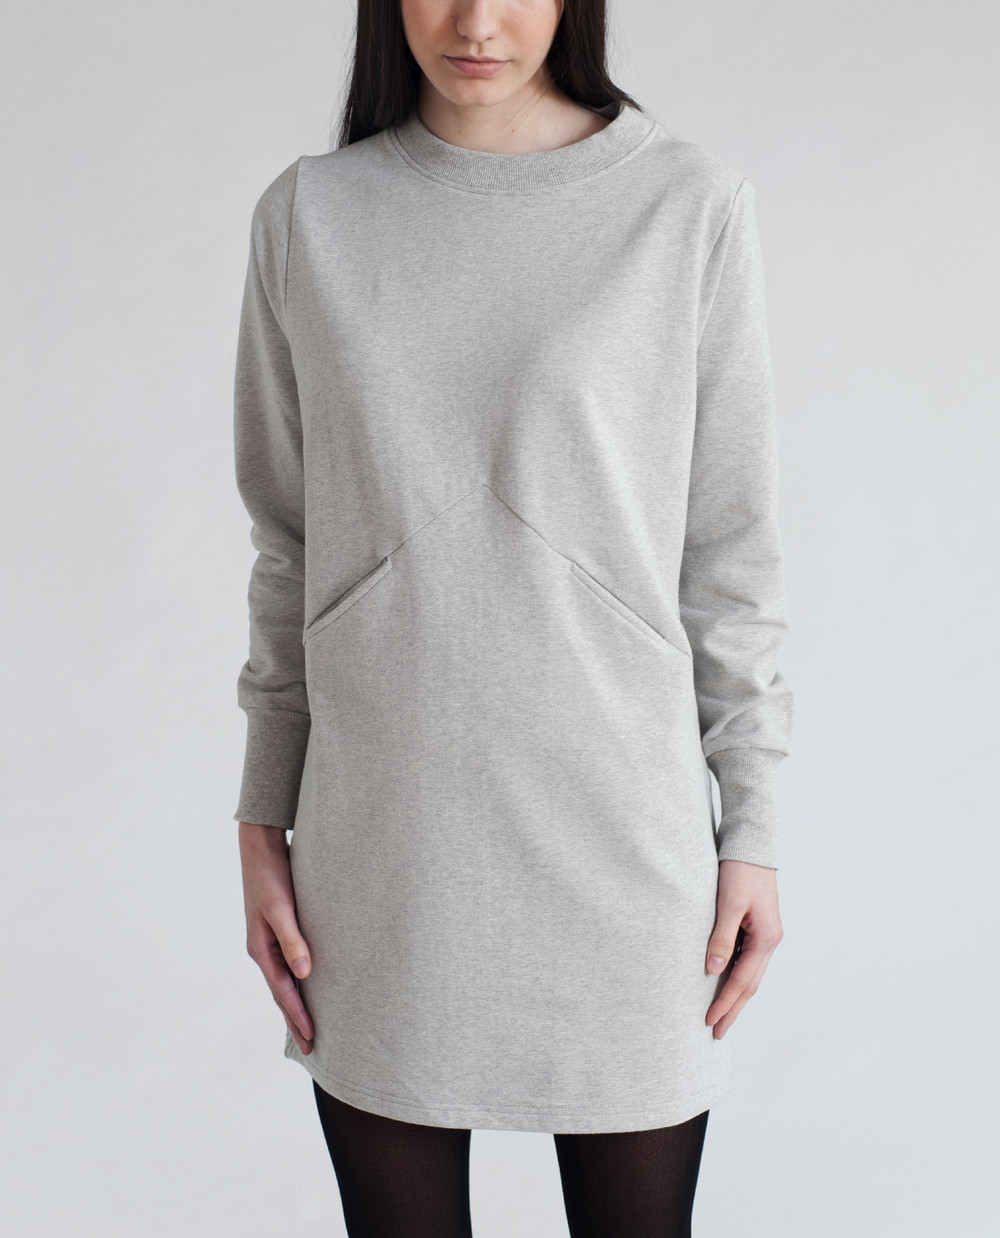 Alexis-Beaumont-Organic-Organic-Cotton-Longline-Fitted-Crew-Neck-Sweatshirt-Light-Grey-1a_66ecd93e-b9a1-44b7-bd49-a1ed7451161d.jpg